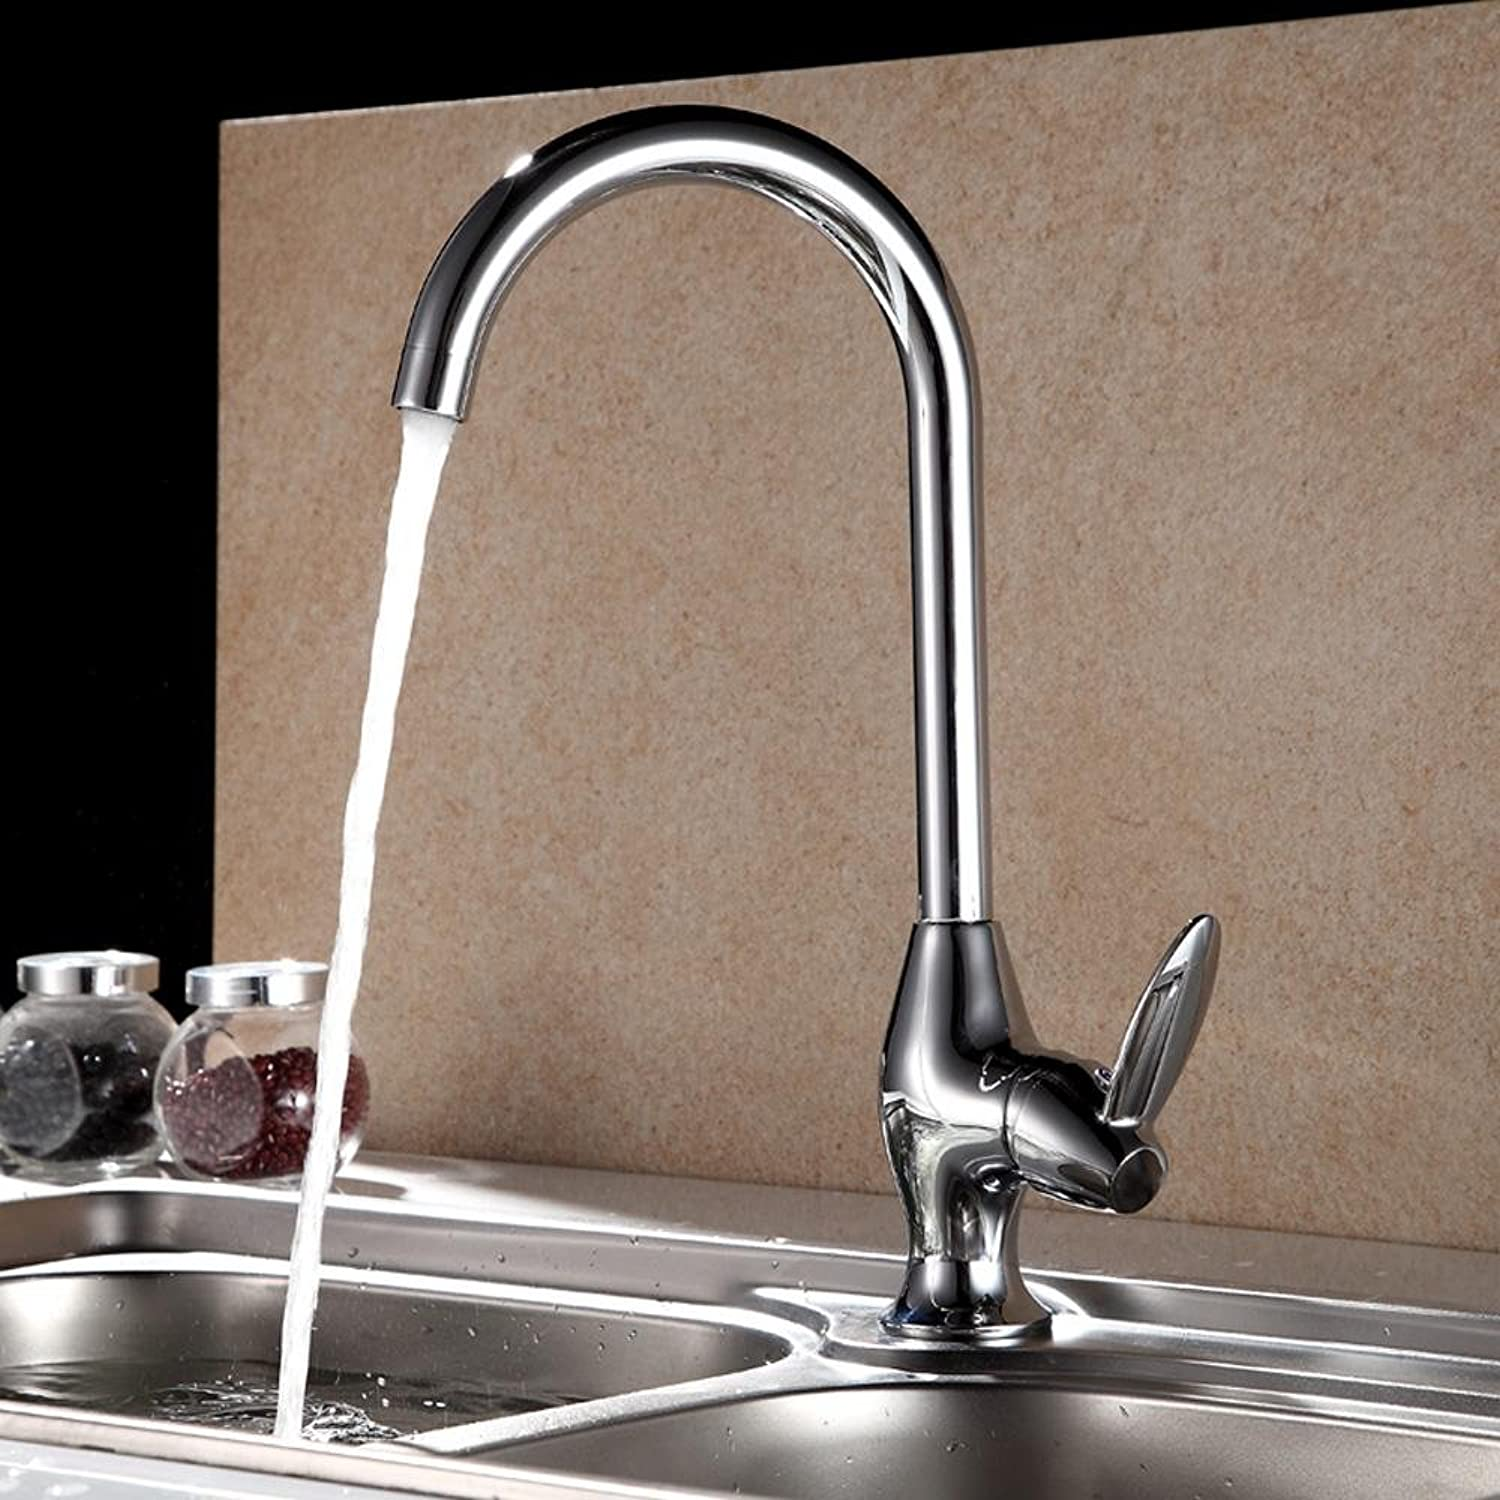 MDRW-Dragon preferredCopper single handle single hole hot and cold, heightening the sink kitchen sink, wash basin faucet